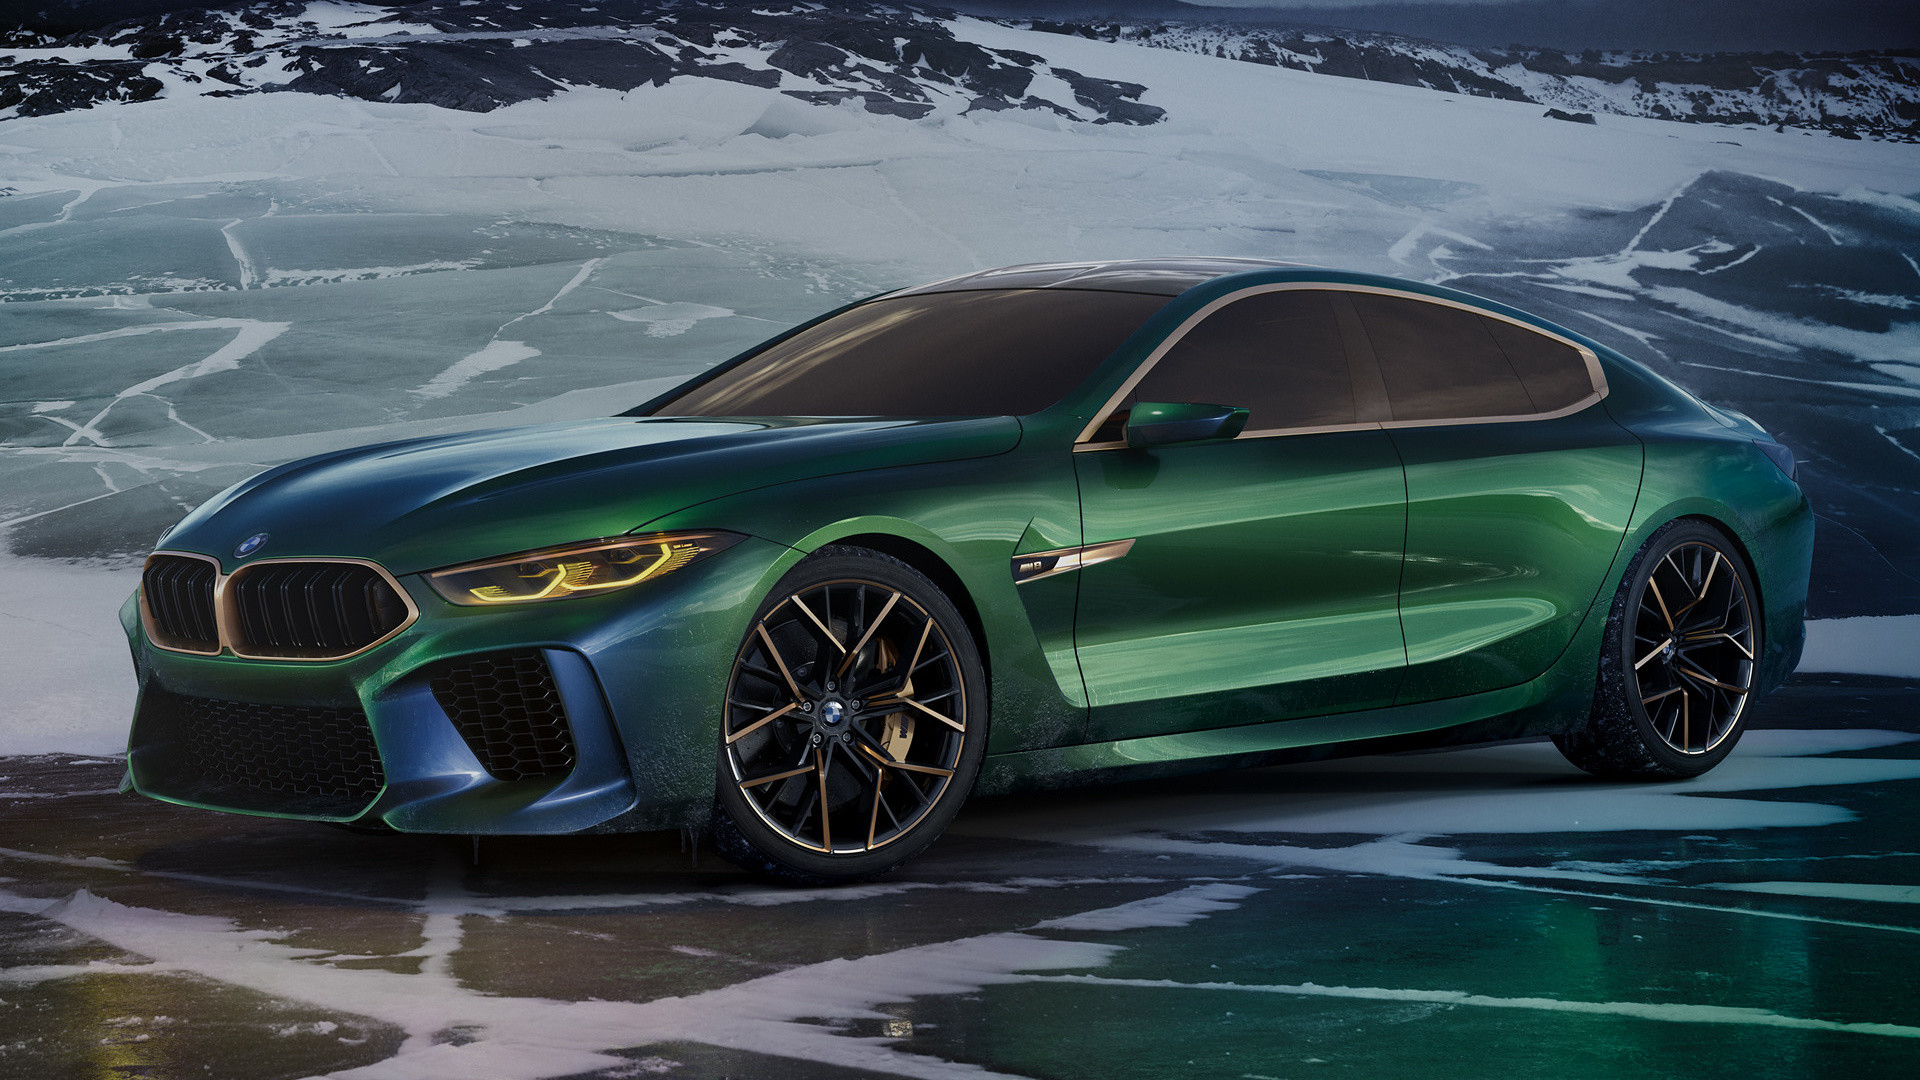 1920x1080 2018 BMW Concept M8 Gran Coupe HD Wallpaper | Hintergrund |  |  ID:908230 - Wallpaper Abyss